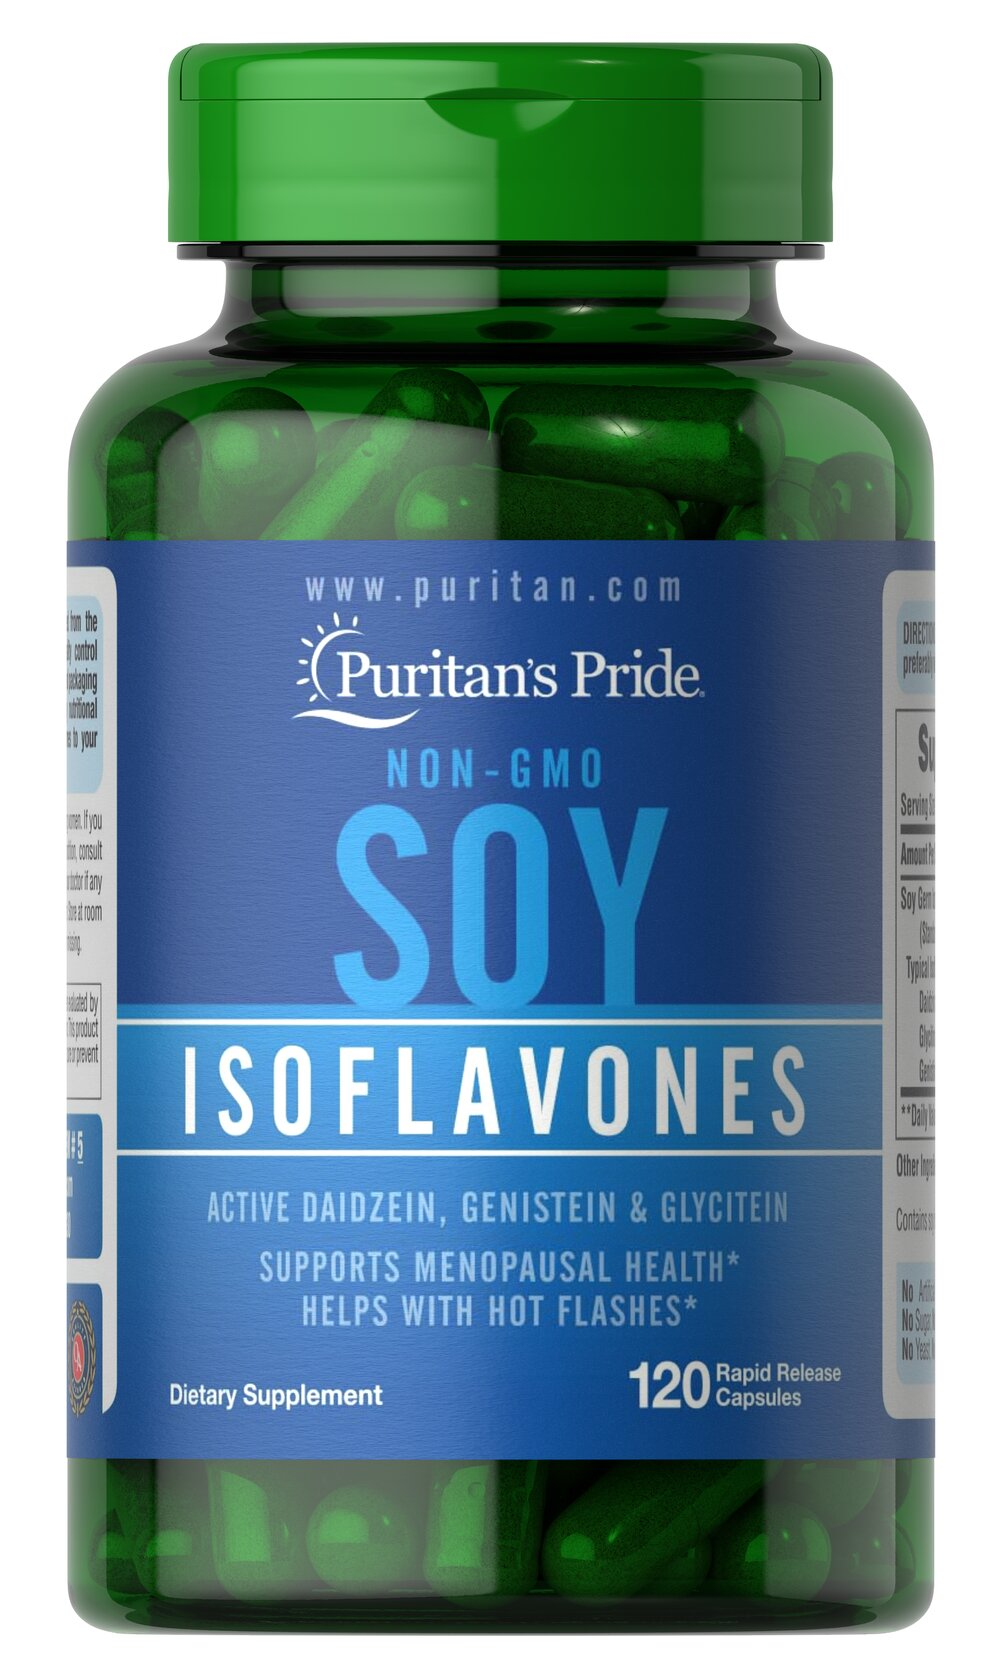 Non-GMO Soy Isoflavones 750 mg <p>Soy is a rich, plant-based source of phytoestrogens, which are naturally occurring compounds that help with hot flashes in menopausal women.**</p><p>Made from non-GMO certified soybeans, soy isoflavones provide holistic supplementation for a woman's midlife years. Our non-GMO soy isoflavones  include Daidzein, Genistein, and other soy isoflavones.</p> 120 Capsules 750 mg $19.99